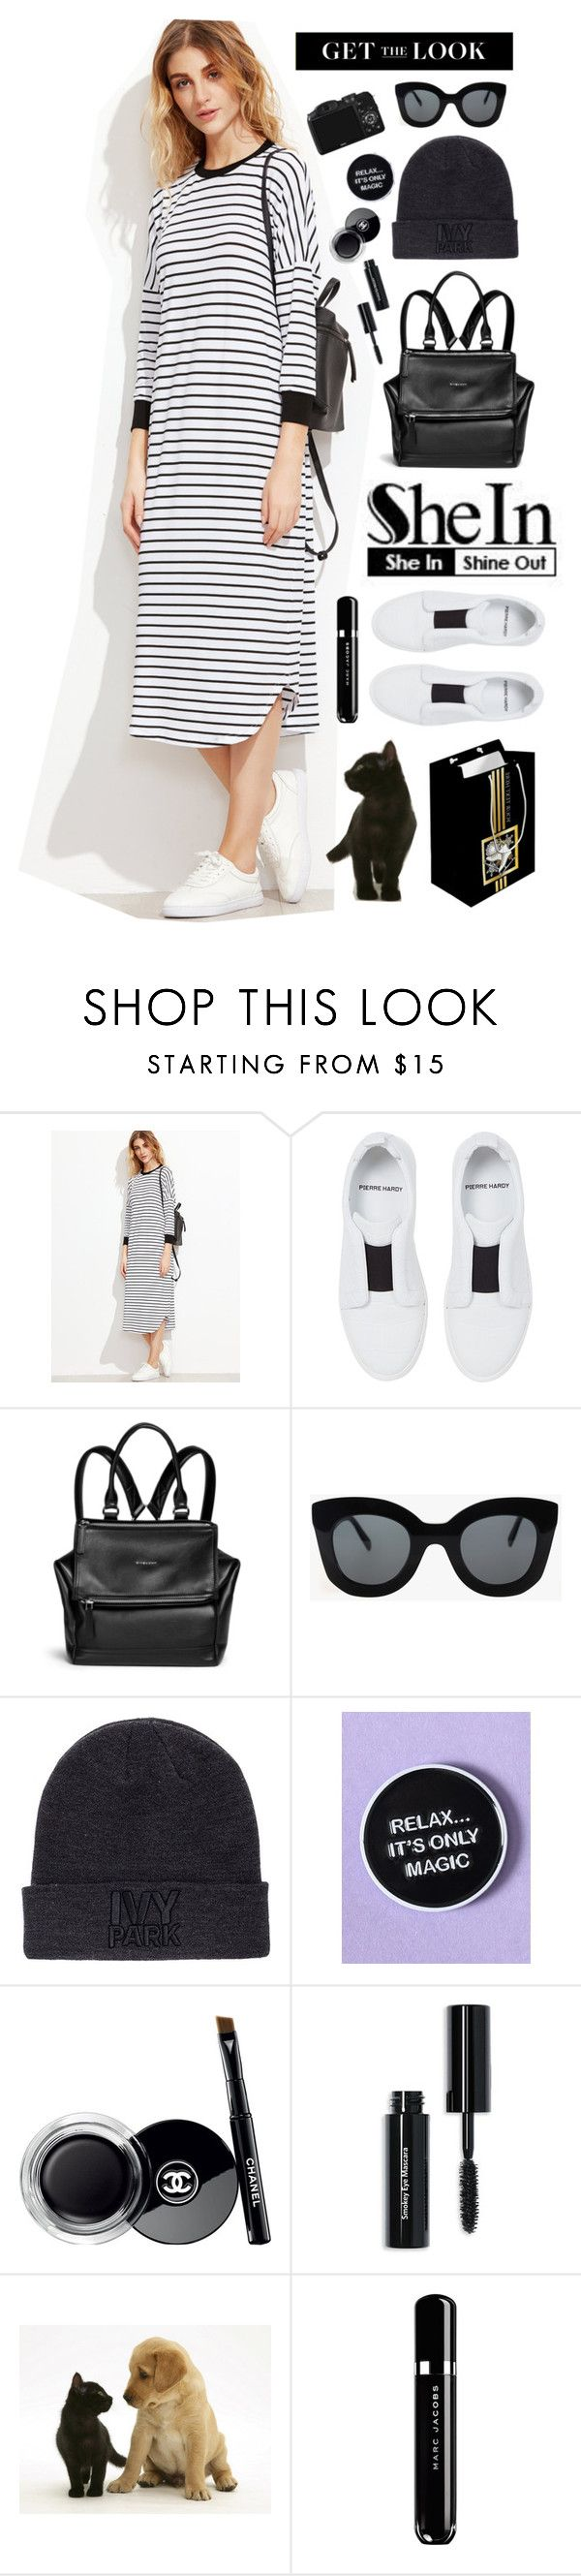 """""""Get the Look ;)"""" by natyleygam ❤ liked on Polyvore featuring Pierre Hardy, Givenchy, CÉLINE, Ivy Park, Chanel, Bobbi Brown Cosmetics, CO and Marc Jacobs"""